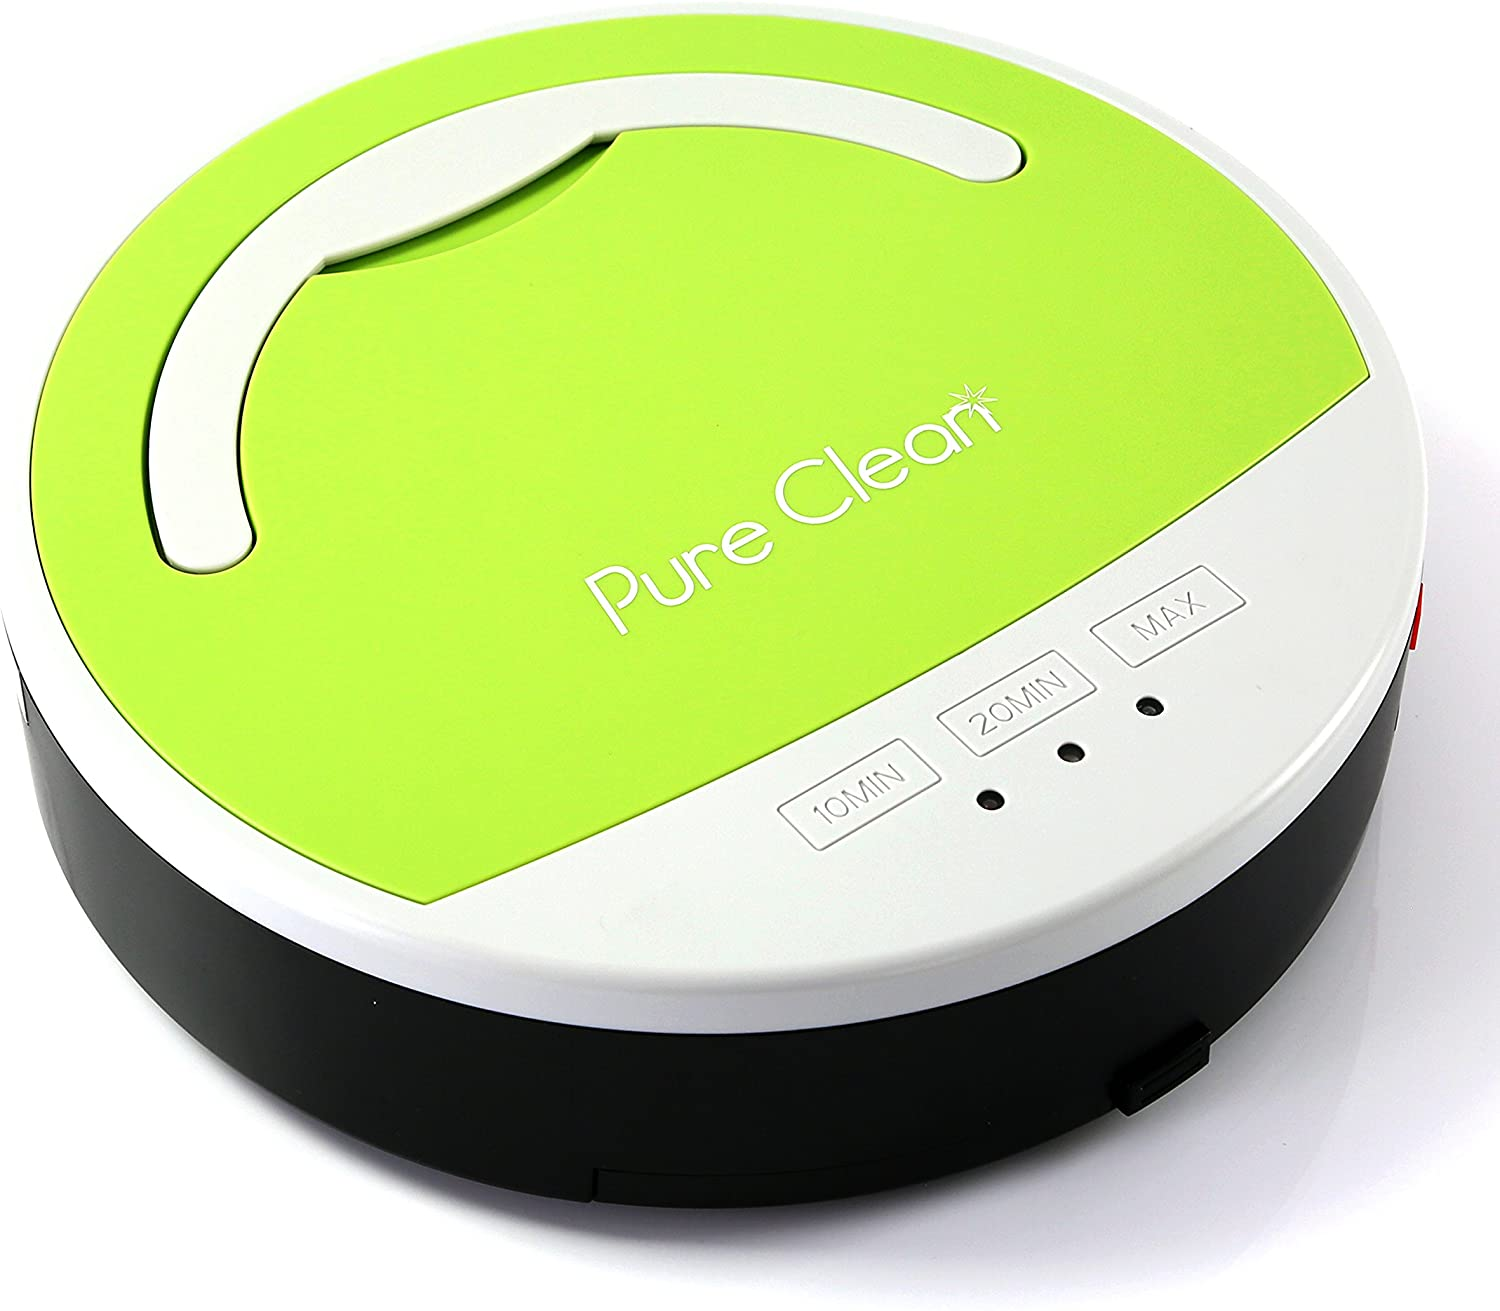 Pyle Pure Clean PUCRC15.1 robot Vacuum Cleaner